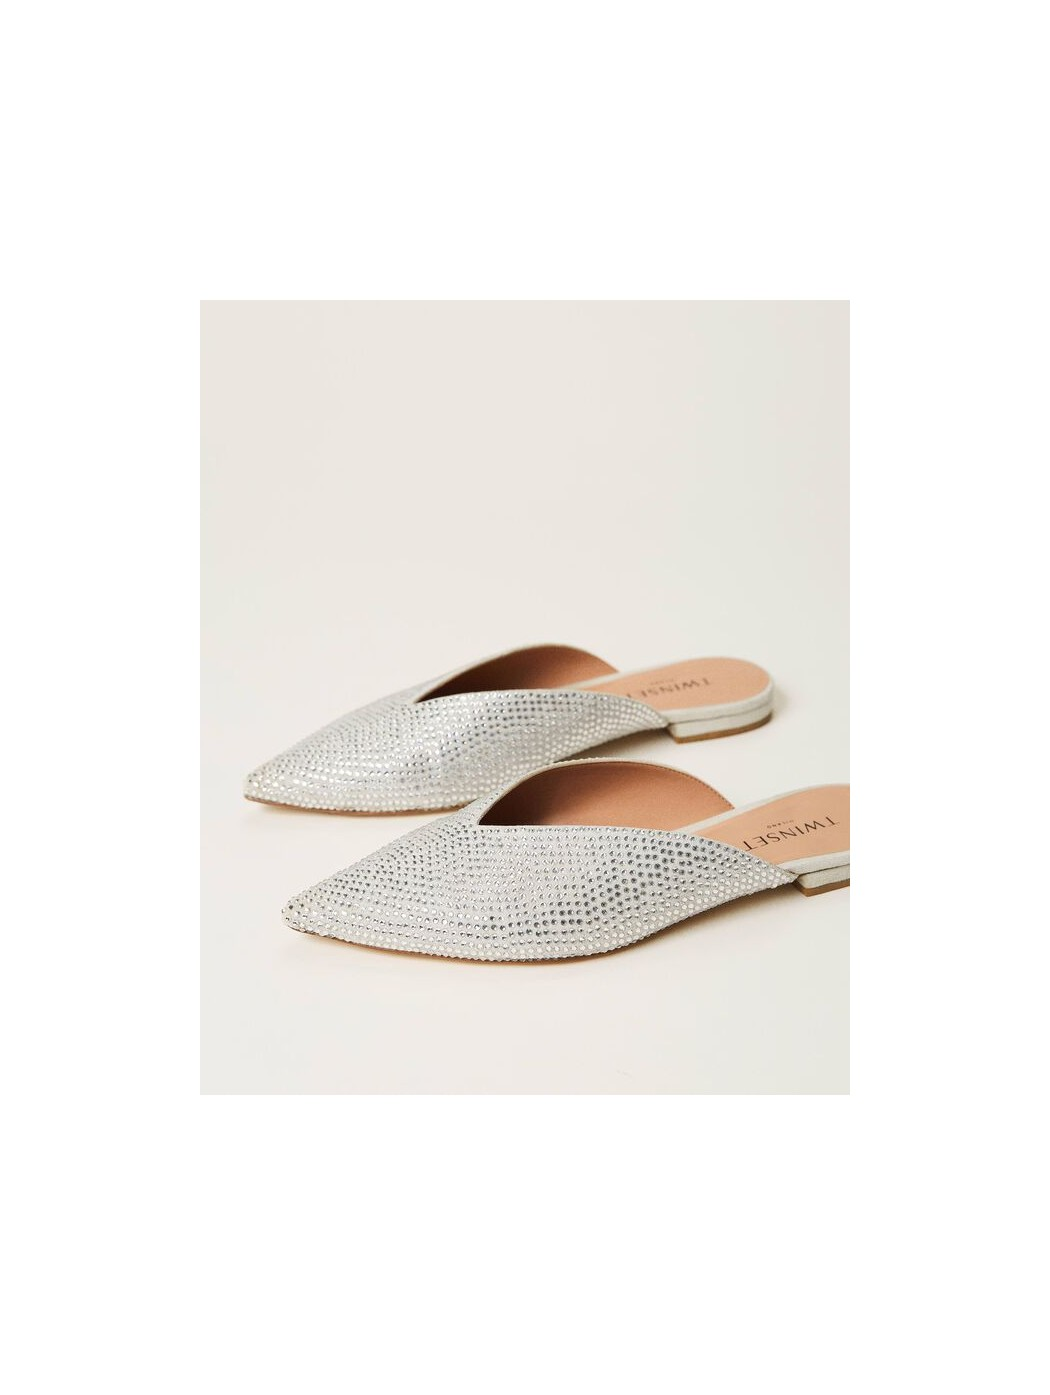 Scarpe slippers con strass TWINSET 211TCT090 06006